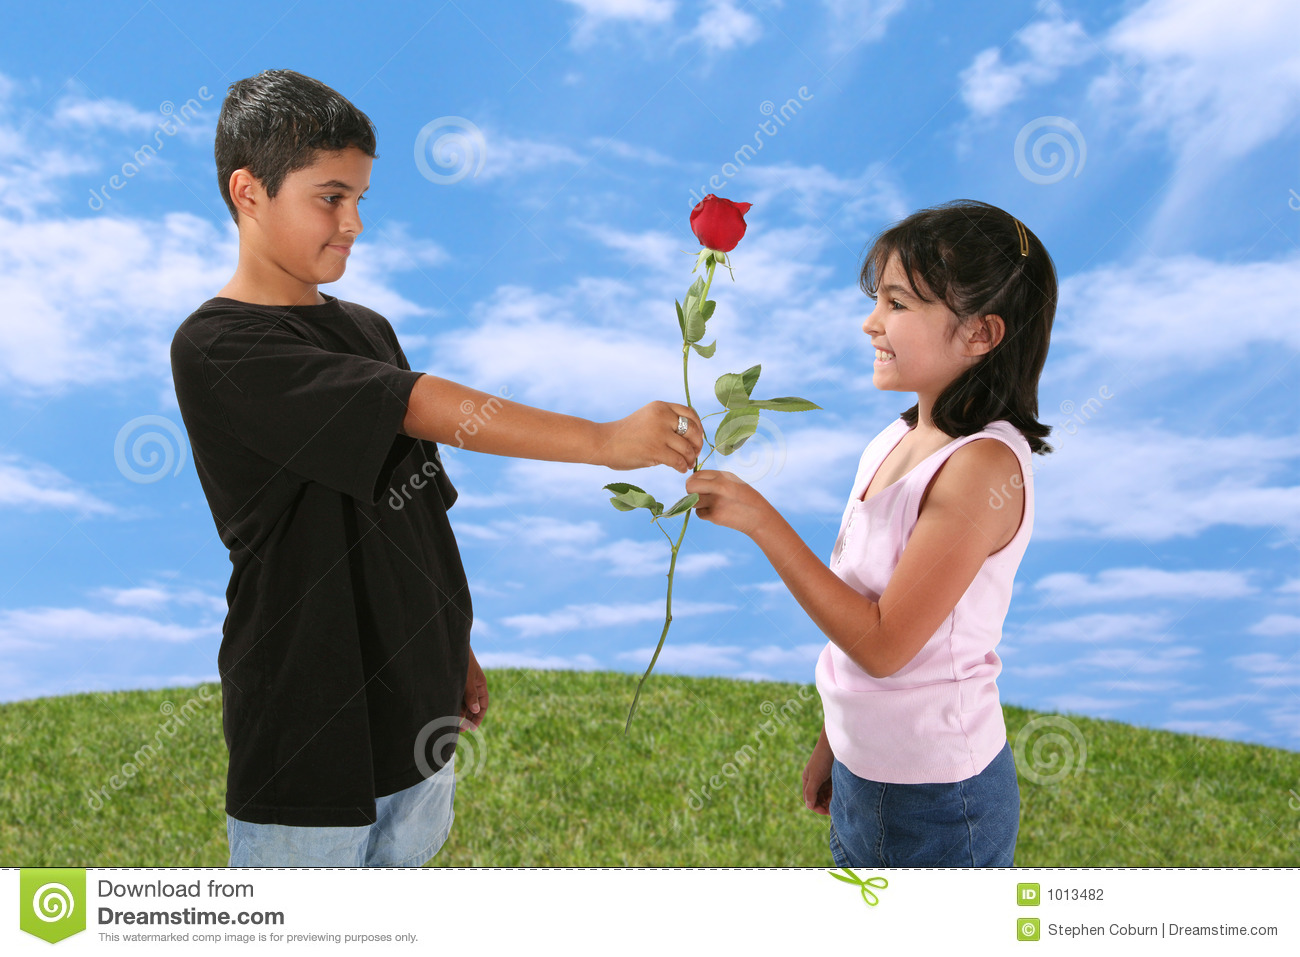 Boy giving girl a rose stock photography image 1013482